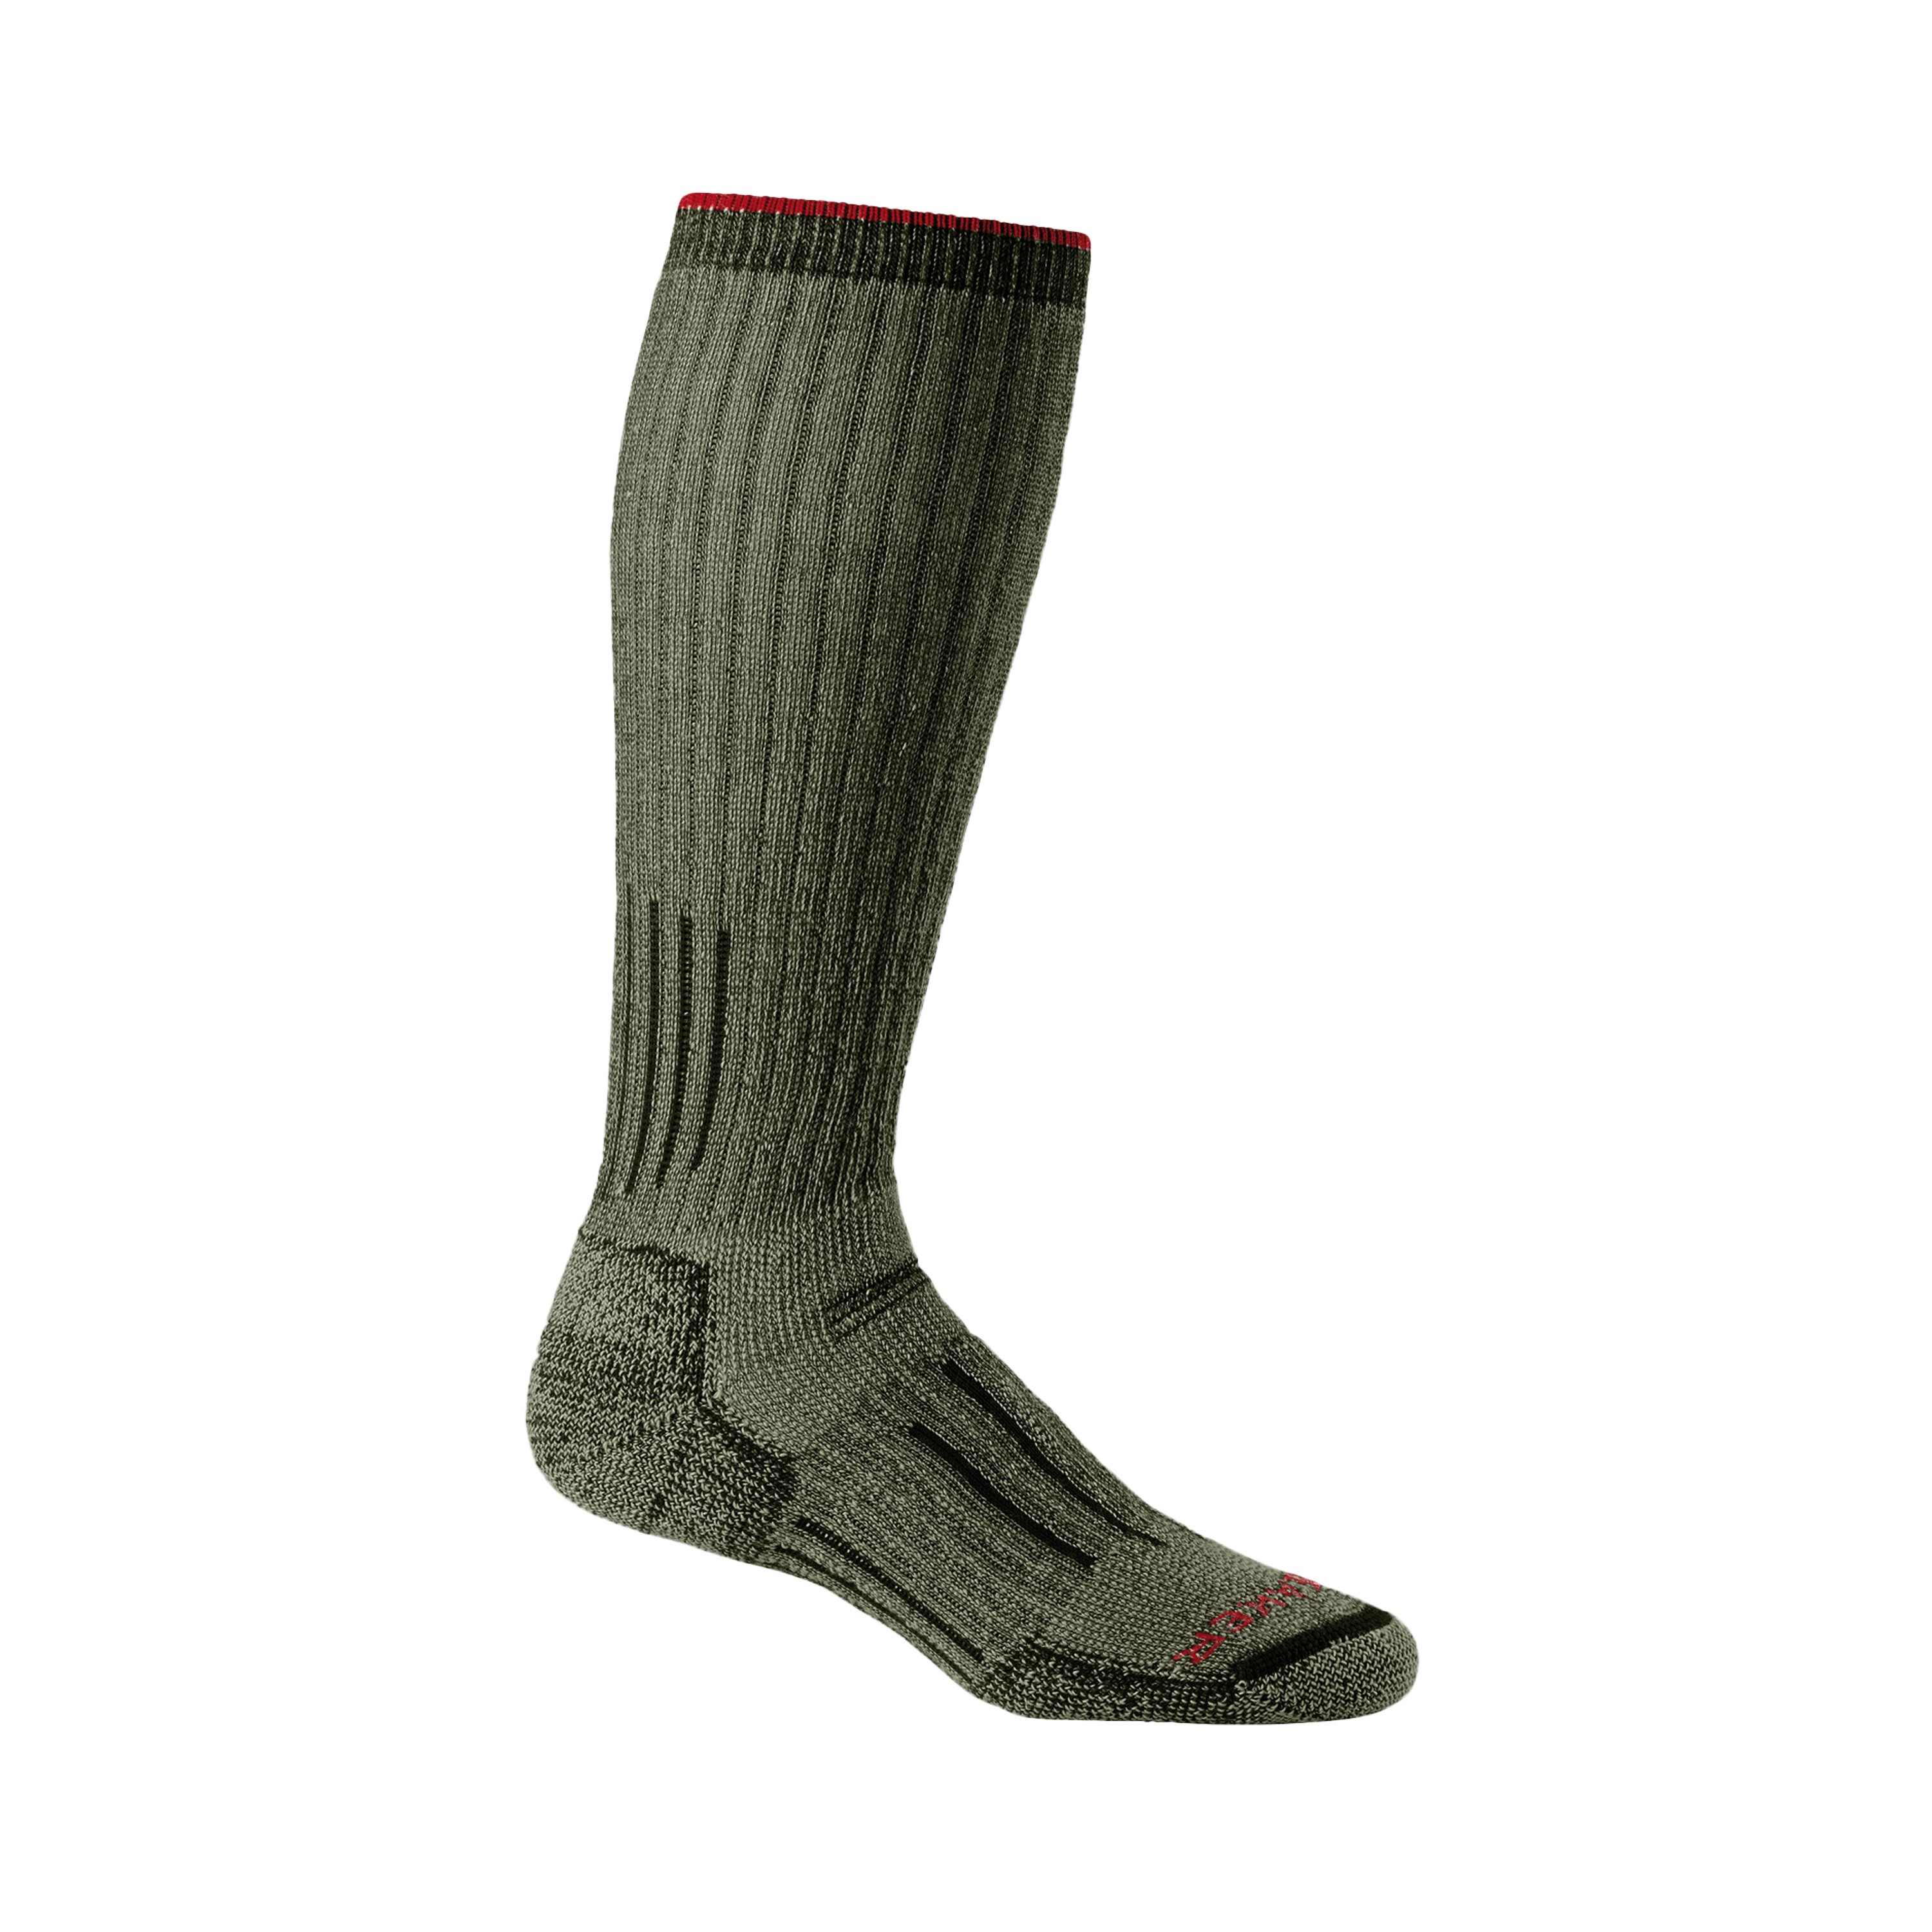 Icebreaker Merino Socken Hunt & Fish Expedition OTC oliv